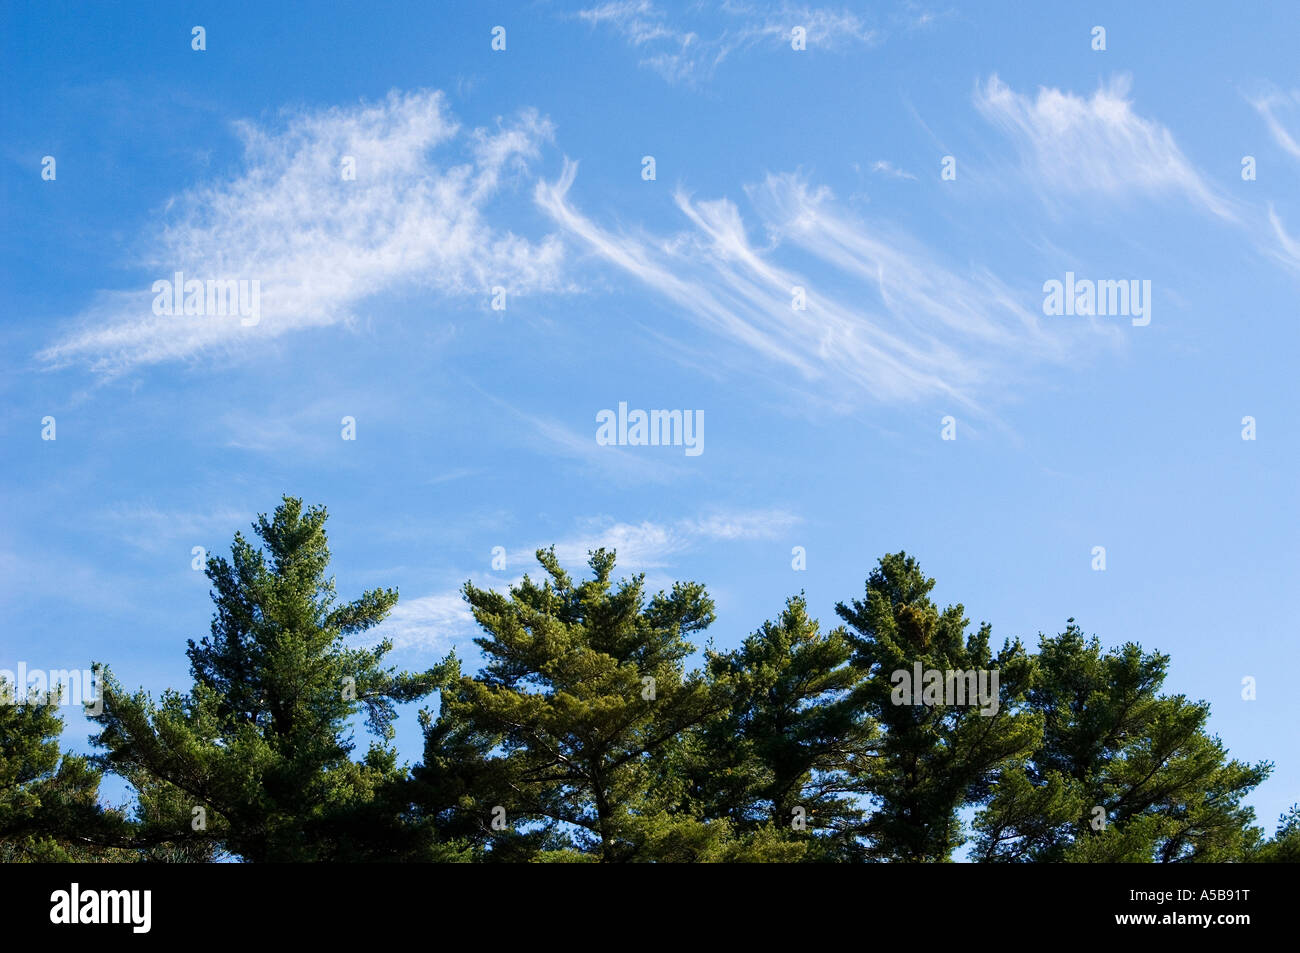 Wispy clouds above evergreen trees. - Stock Image